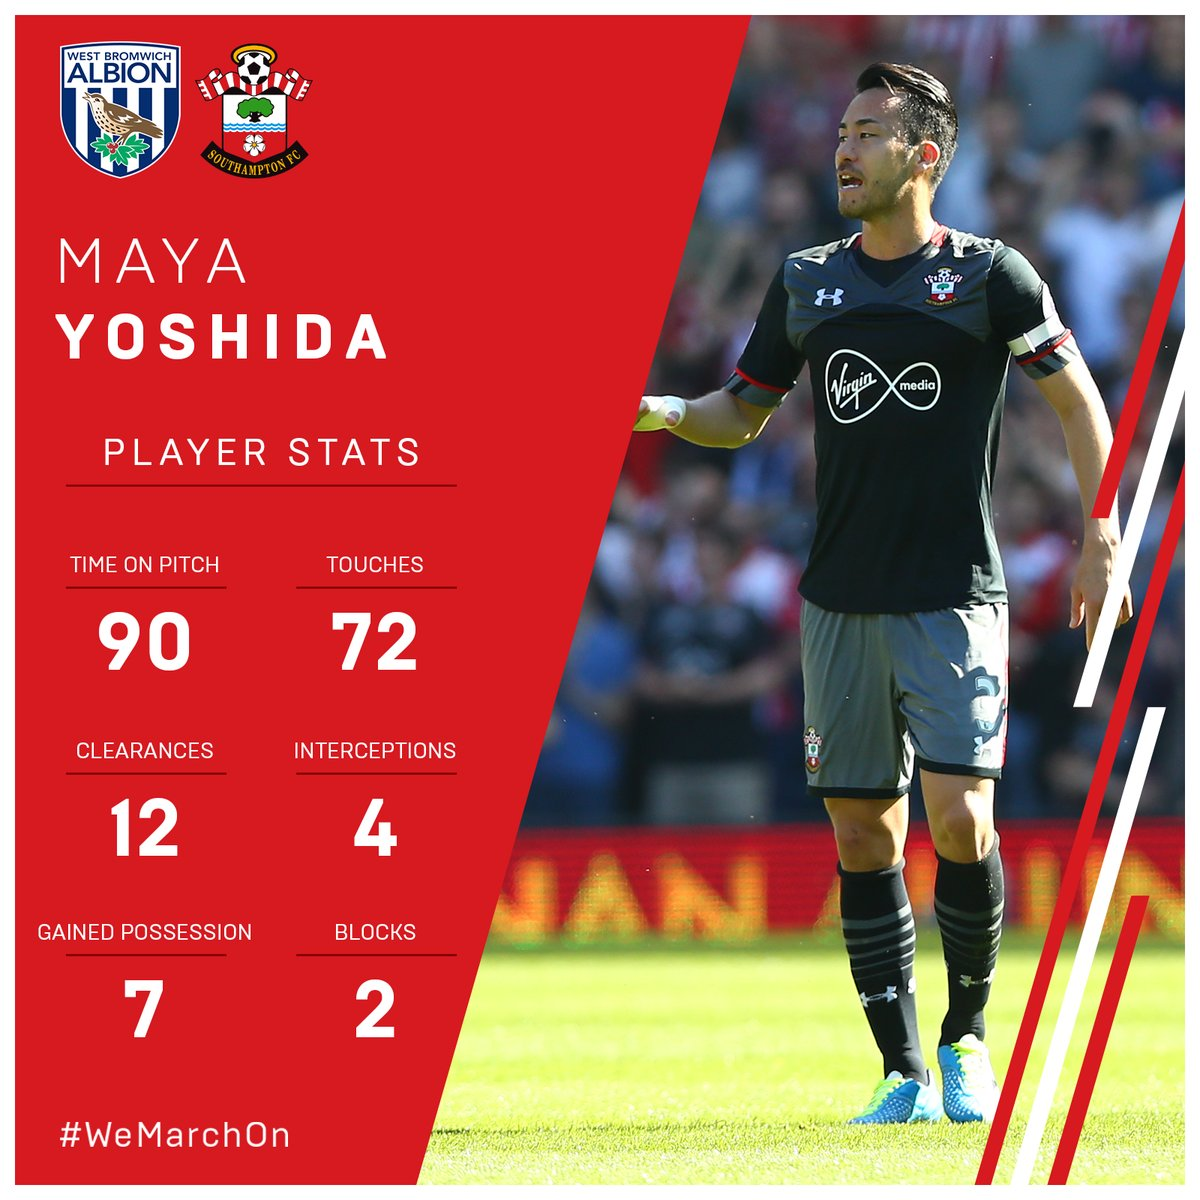 A captains performance from #SaintsFCs @MayaYoshida3 this afternoon! 👊